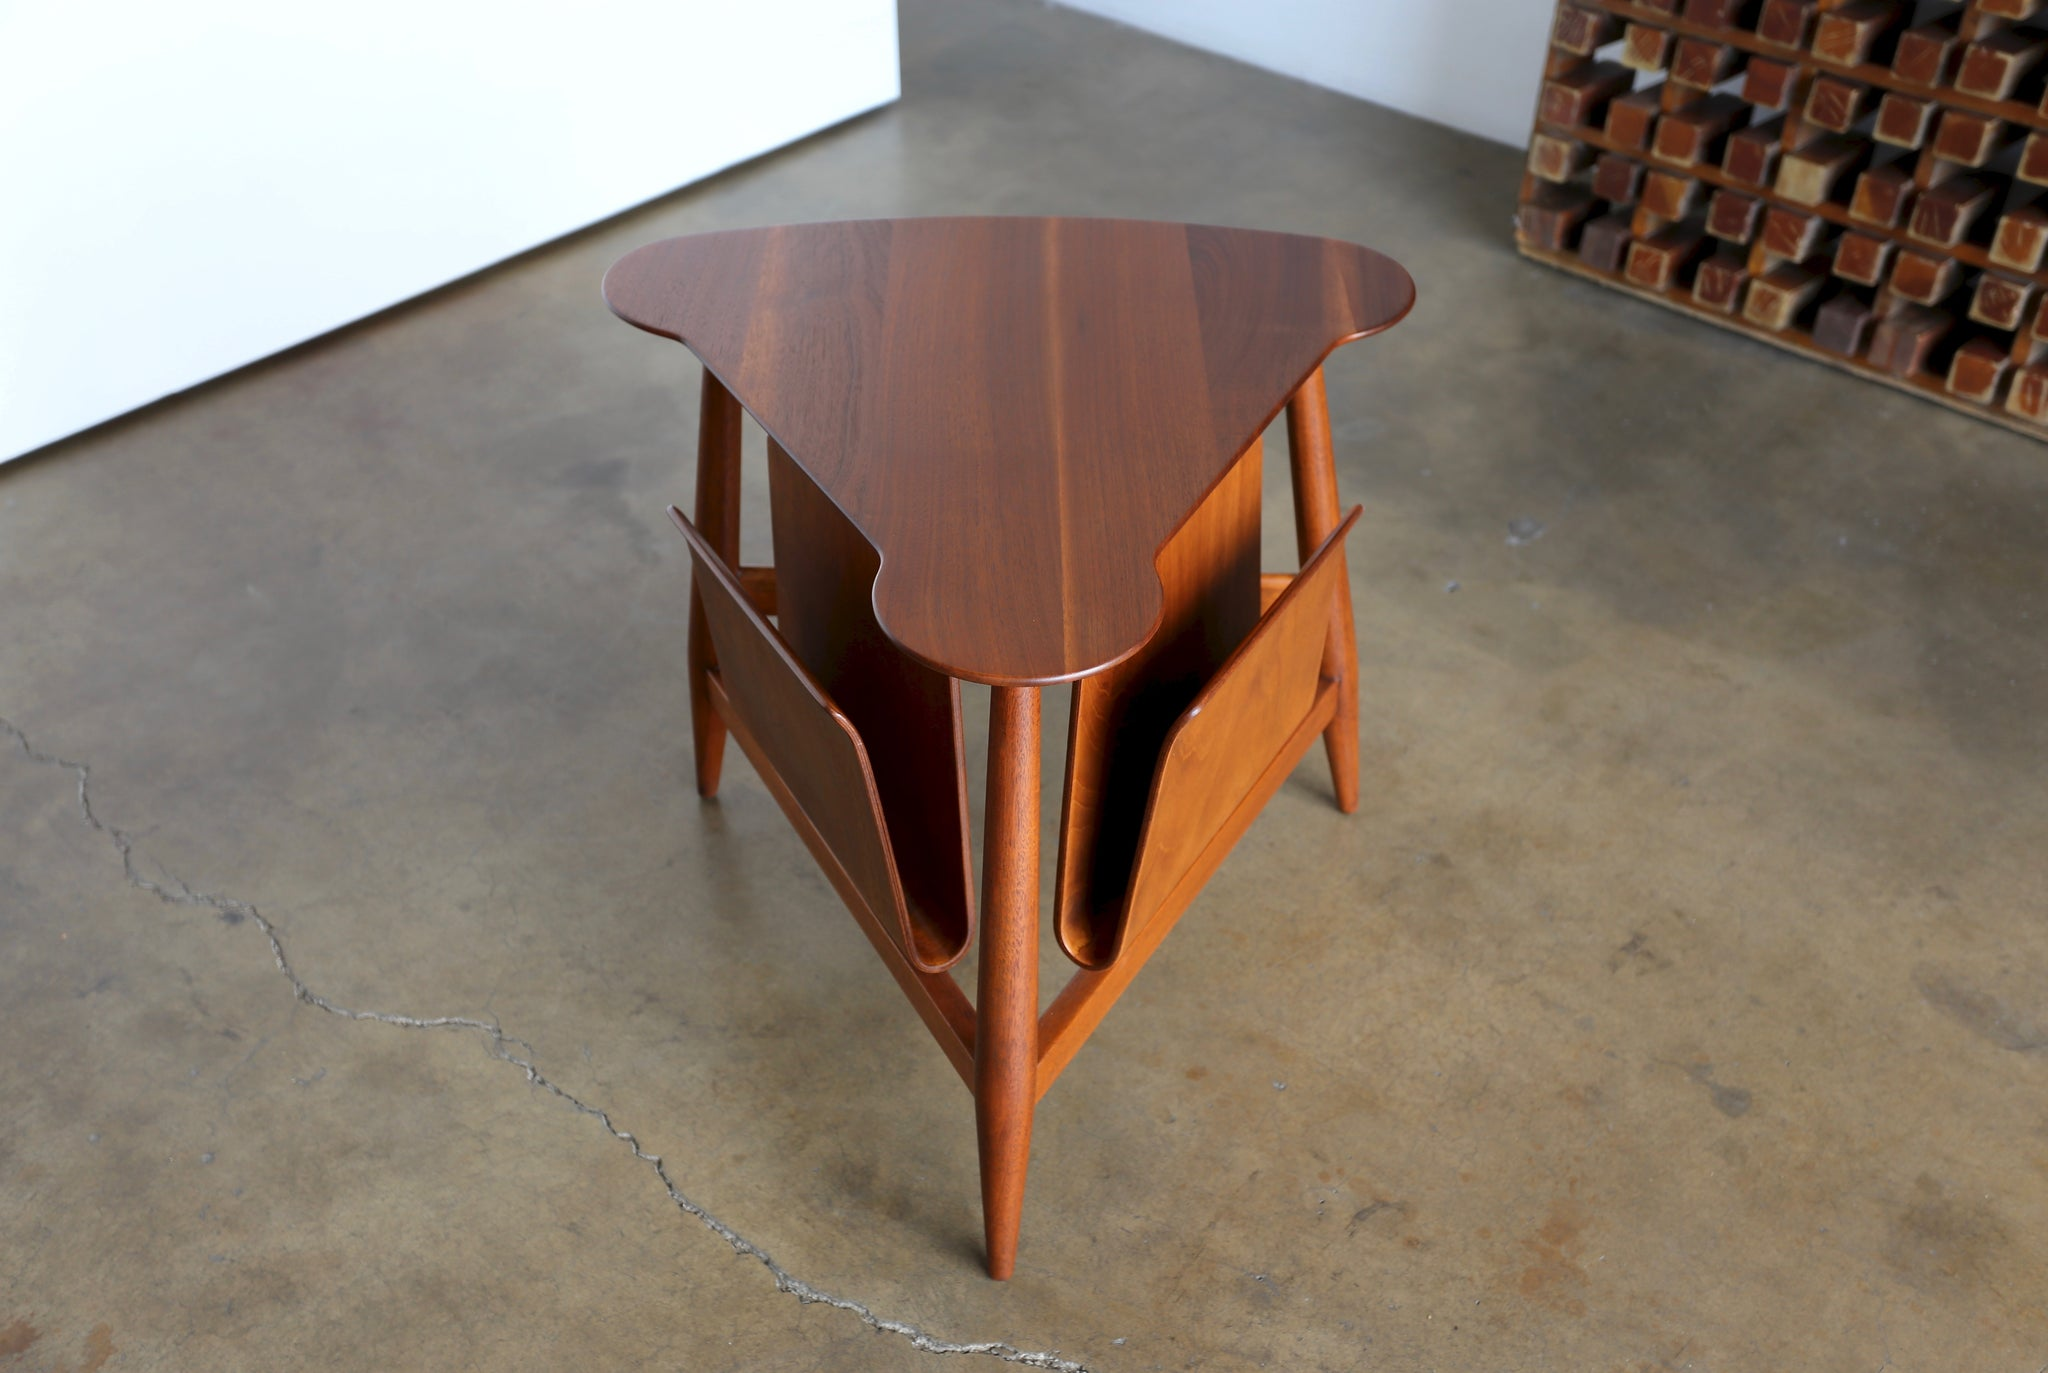 = SOLD = Edward Wormley Magazine Table Model 5313